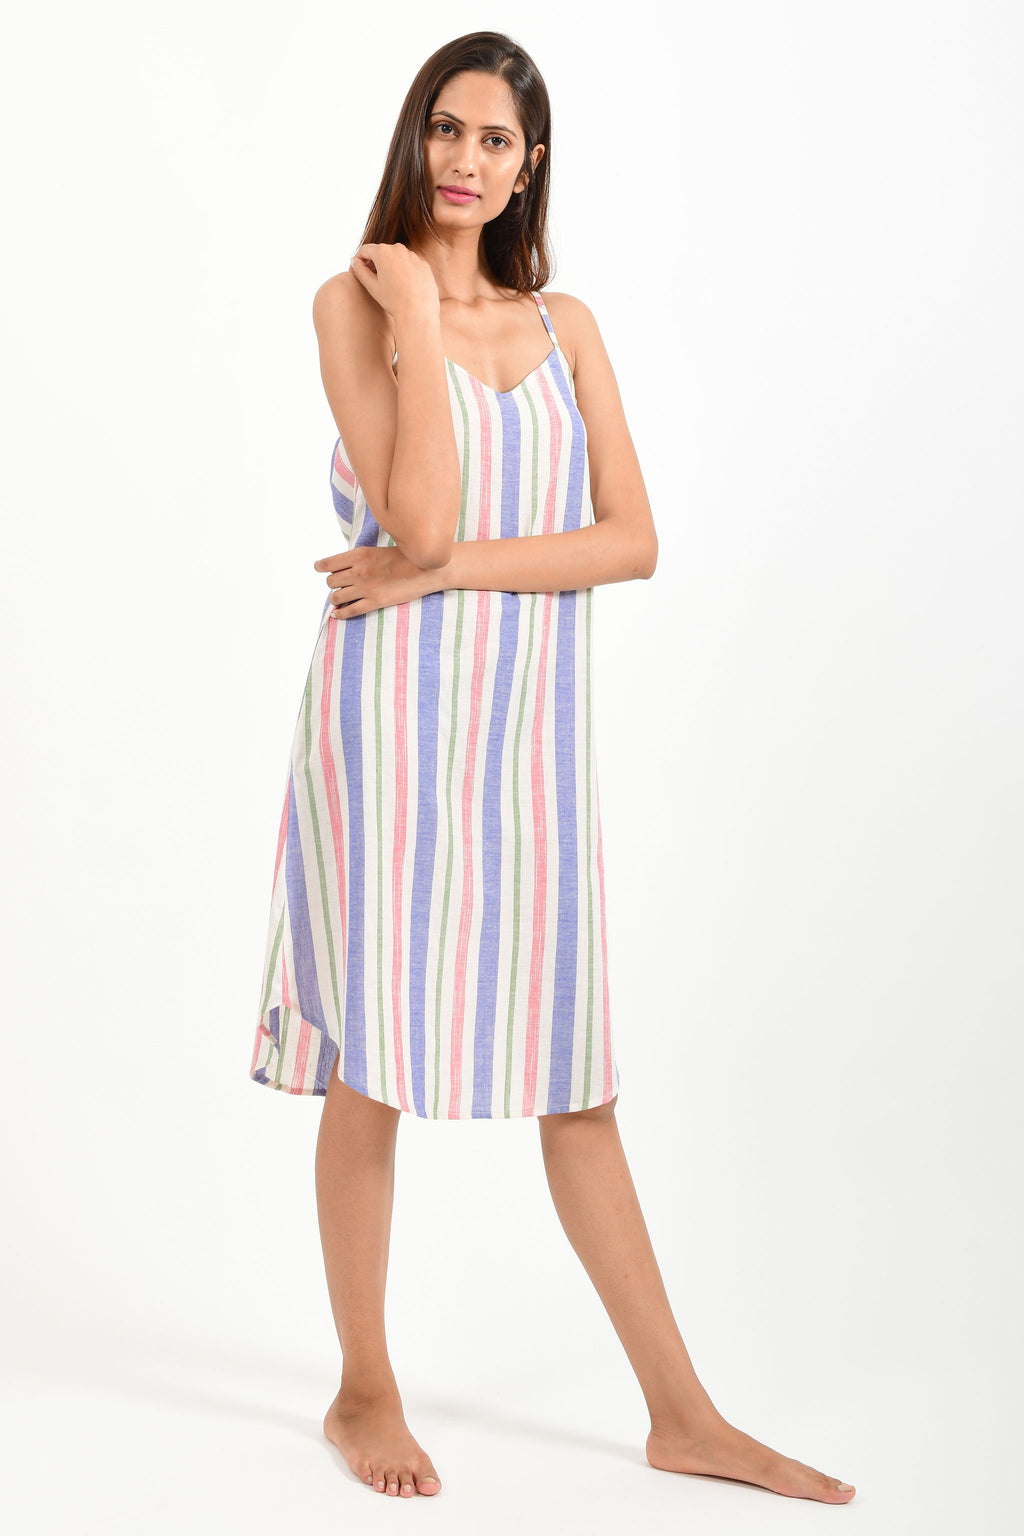 Front pose of an Indian female womenswear fashion model in an mutli colored striped handspun and handwoven khadi cotton spaghetti dress by Cotton Rack.